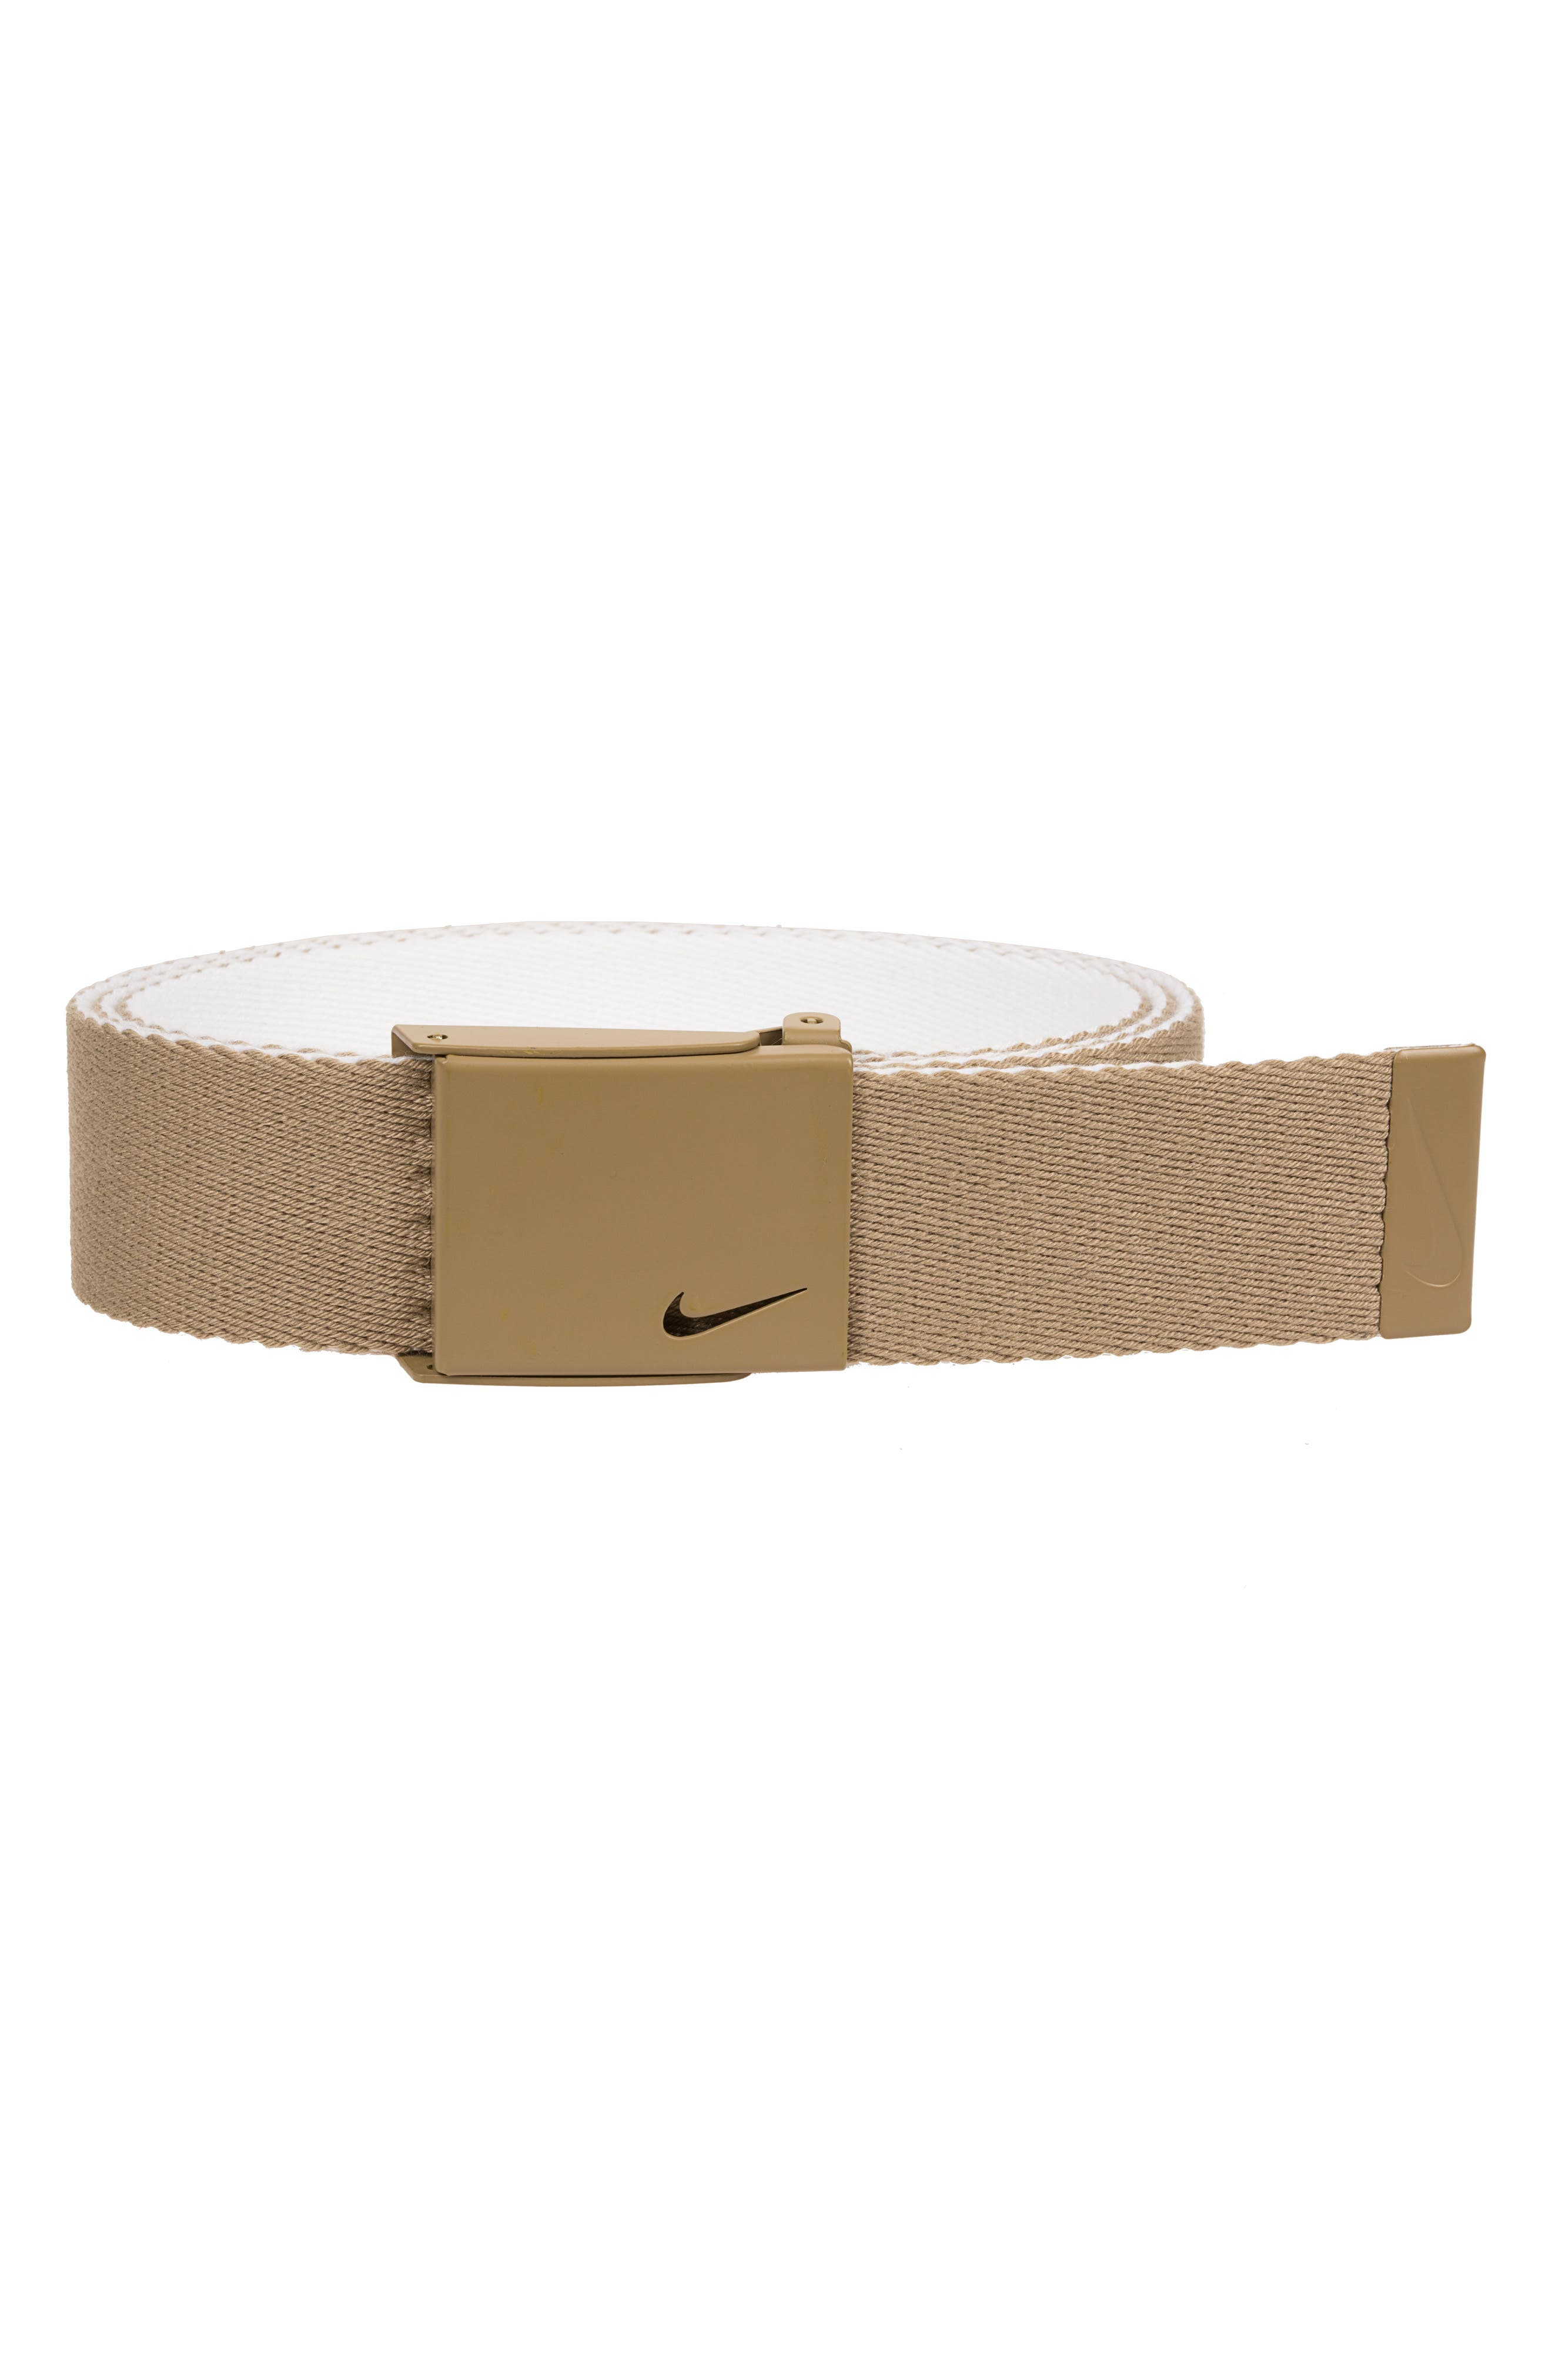 Essentials Reversible Webbed Belt,                         Main,                         color, KHAKI/ WHITE